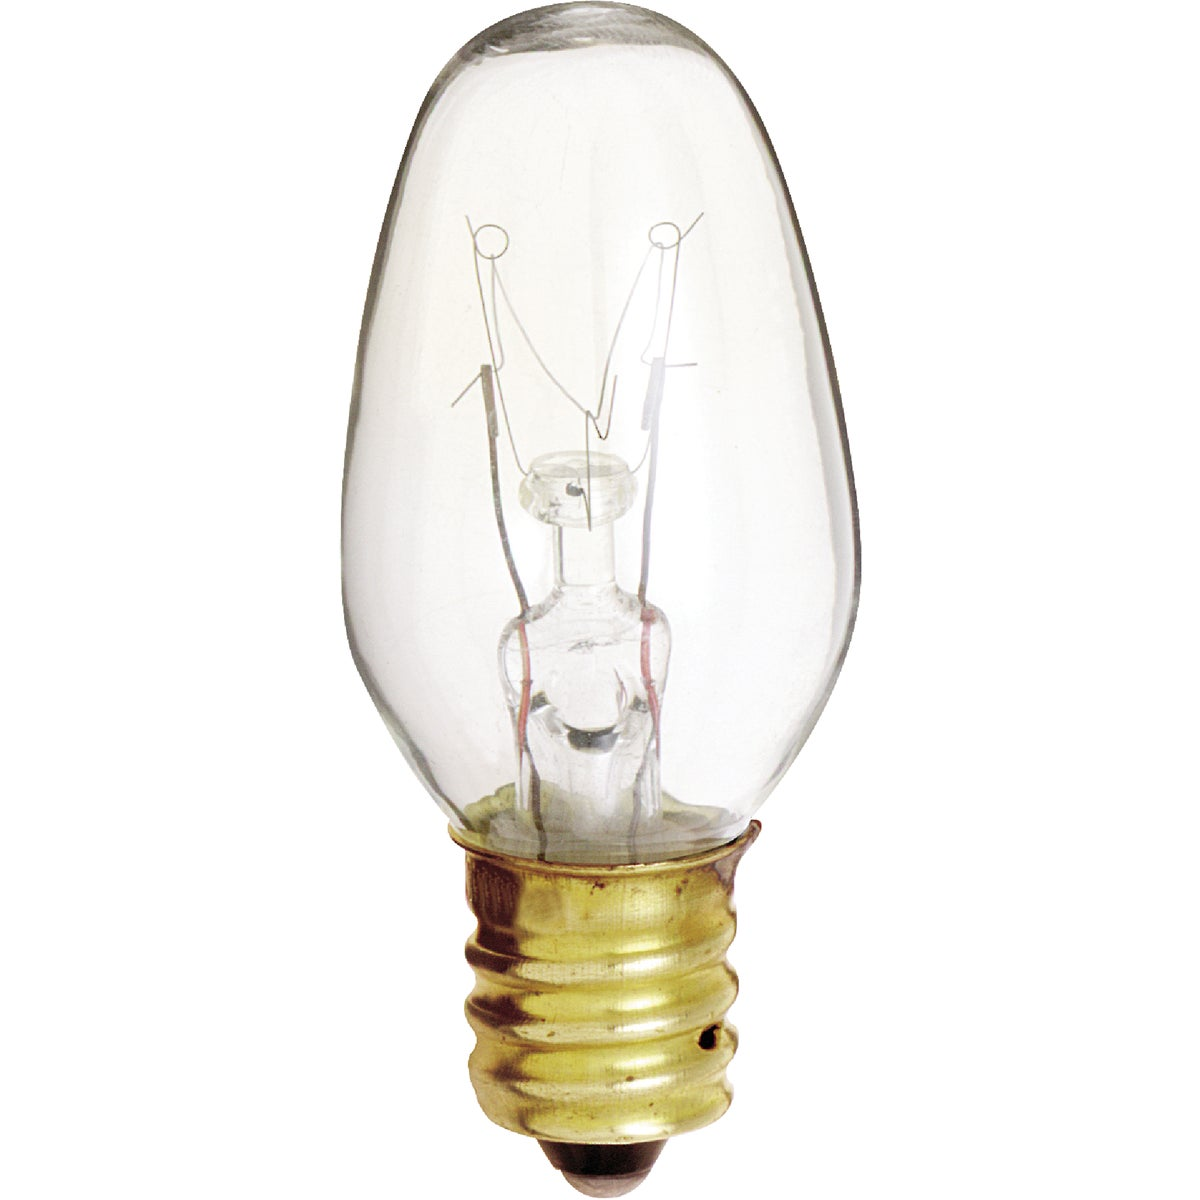 4W CLR NIGHT LIGHT BULB